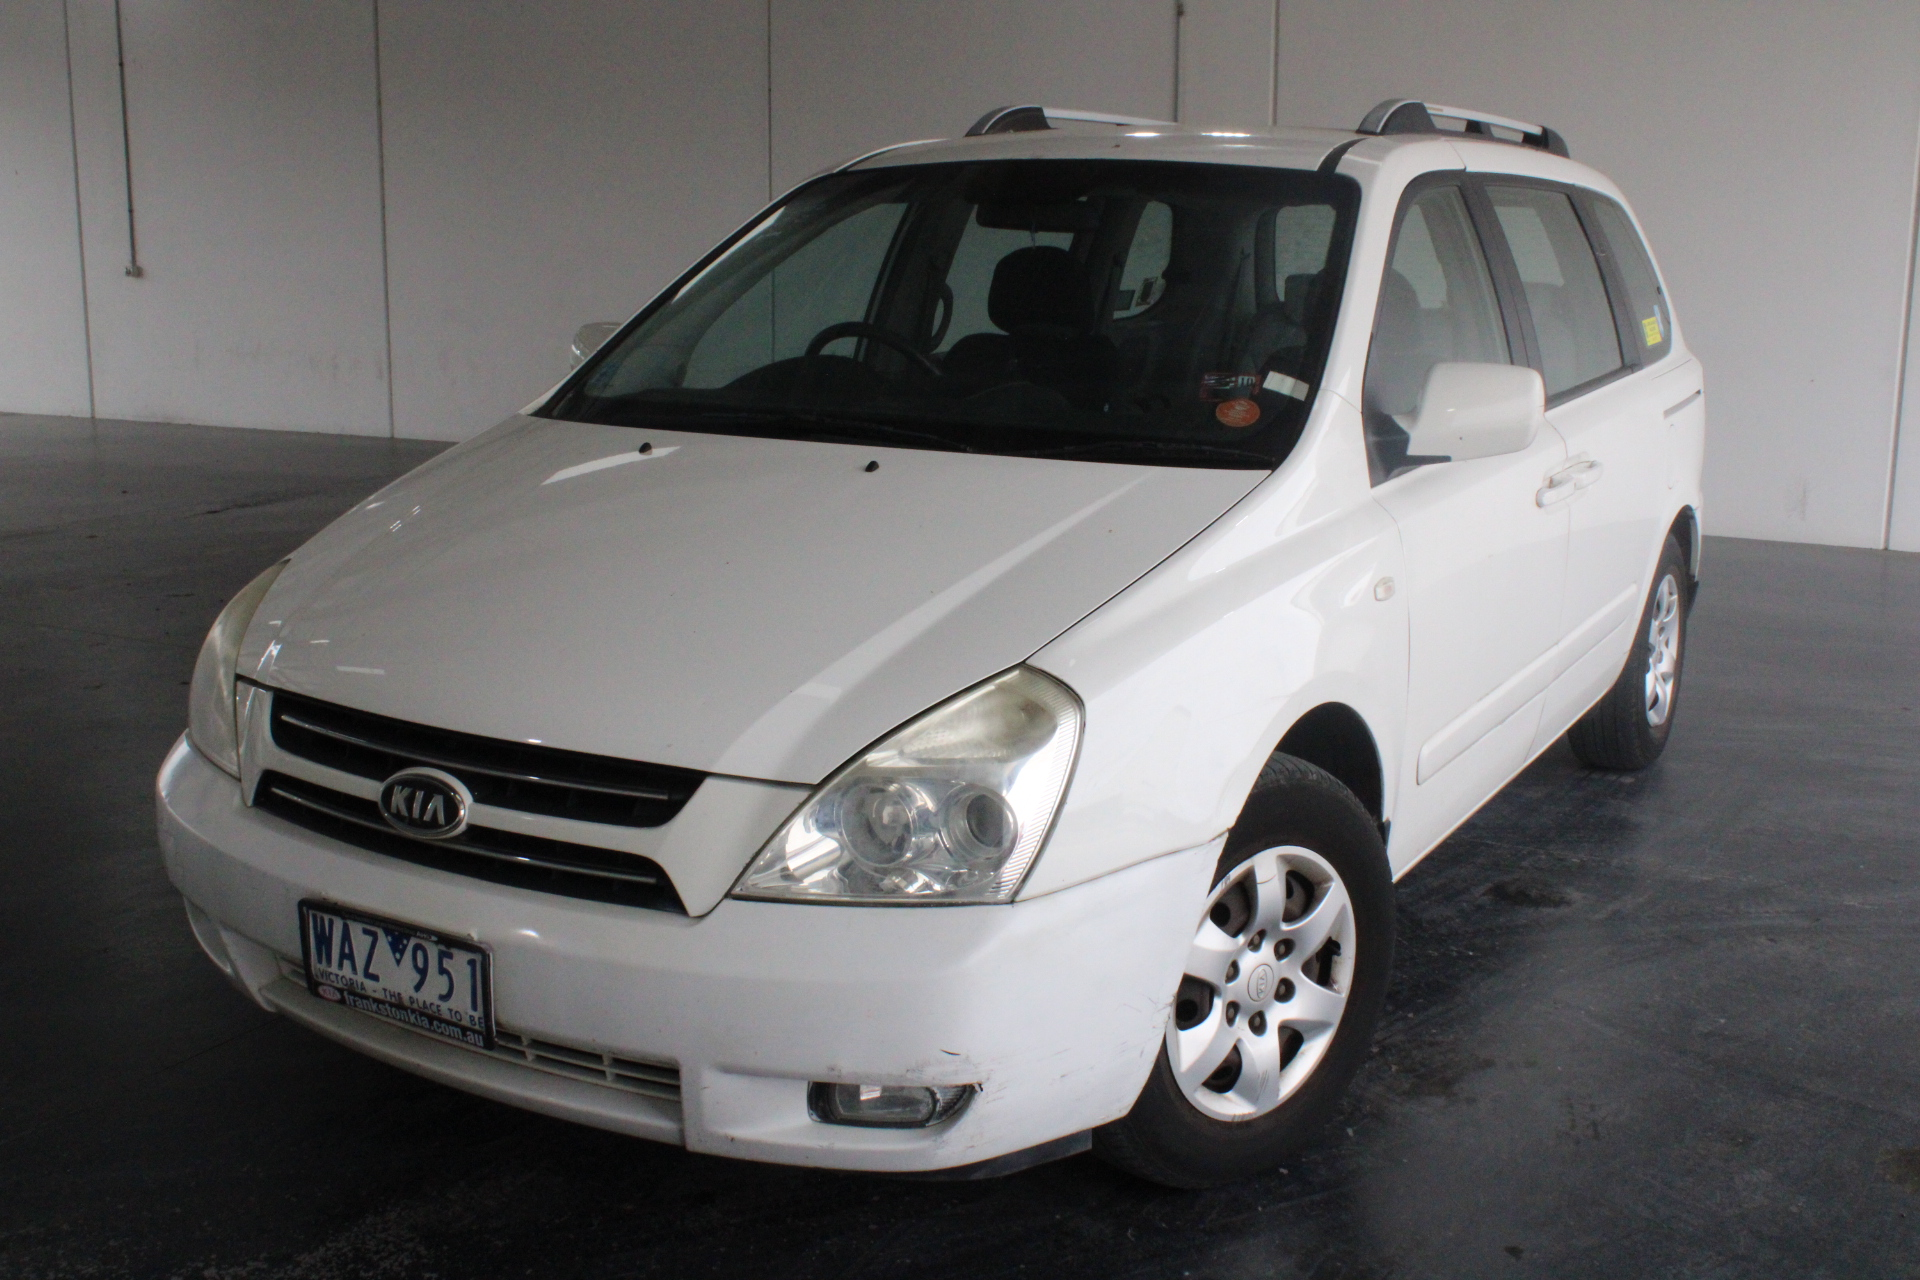 2007 Kia Carnival EX VQ Automatic 7 Seats People Mover